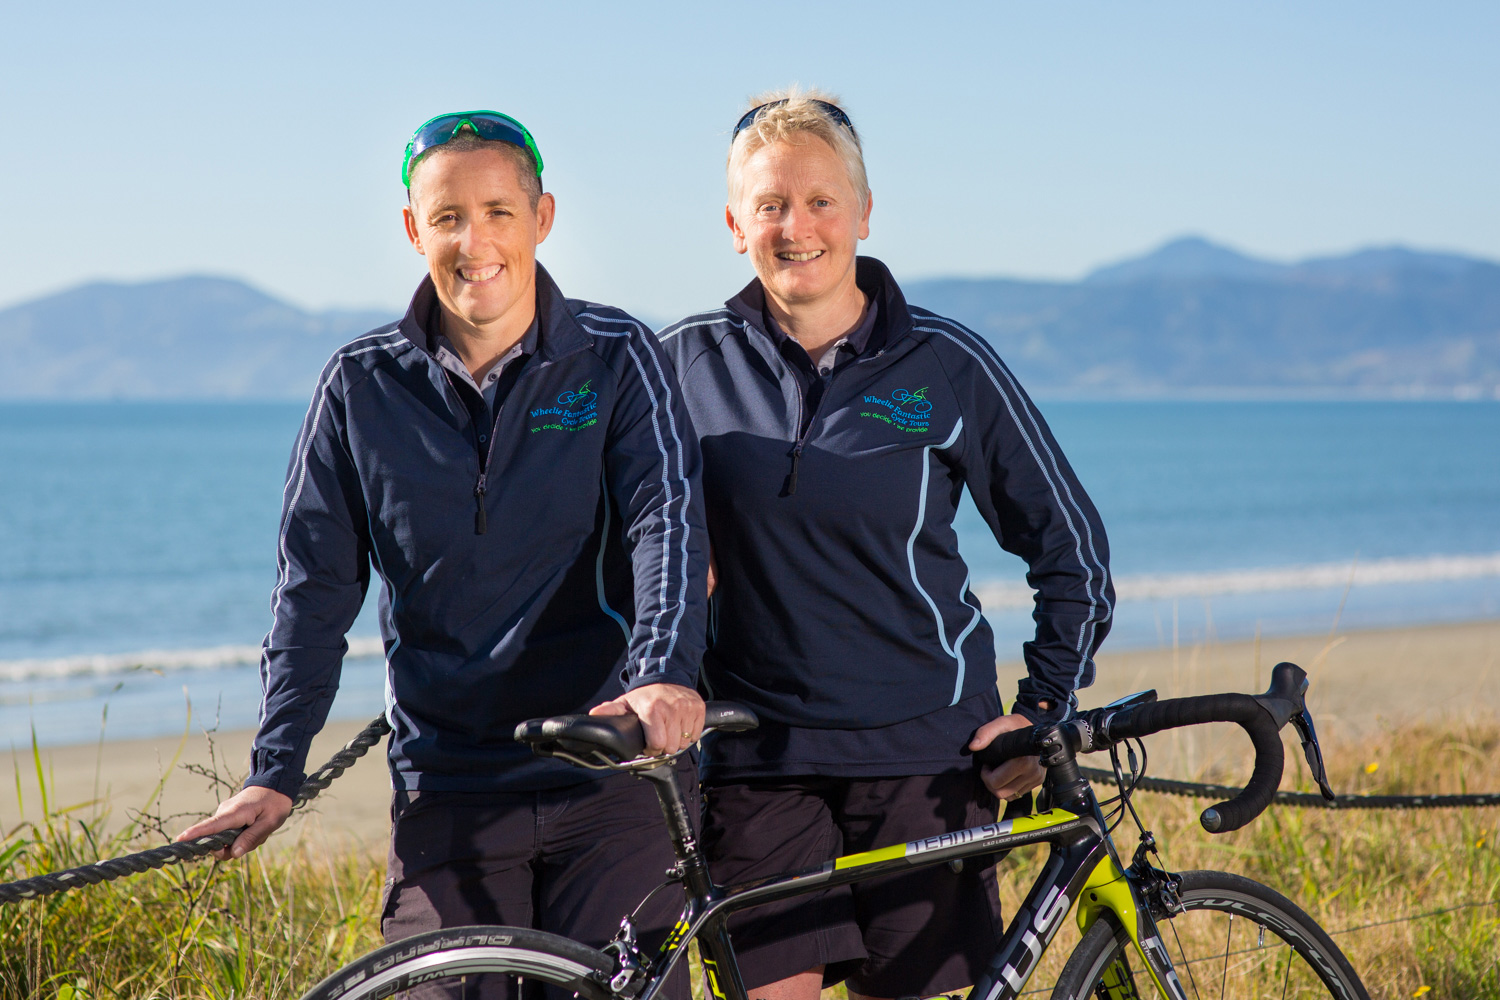 Wheelie Fantastic Cycle Tours - Nicky and Lisa - Owners